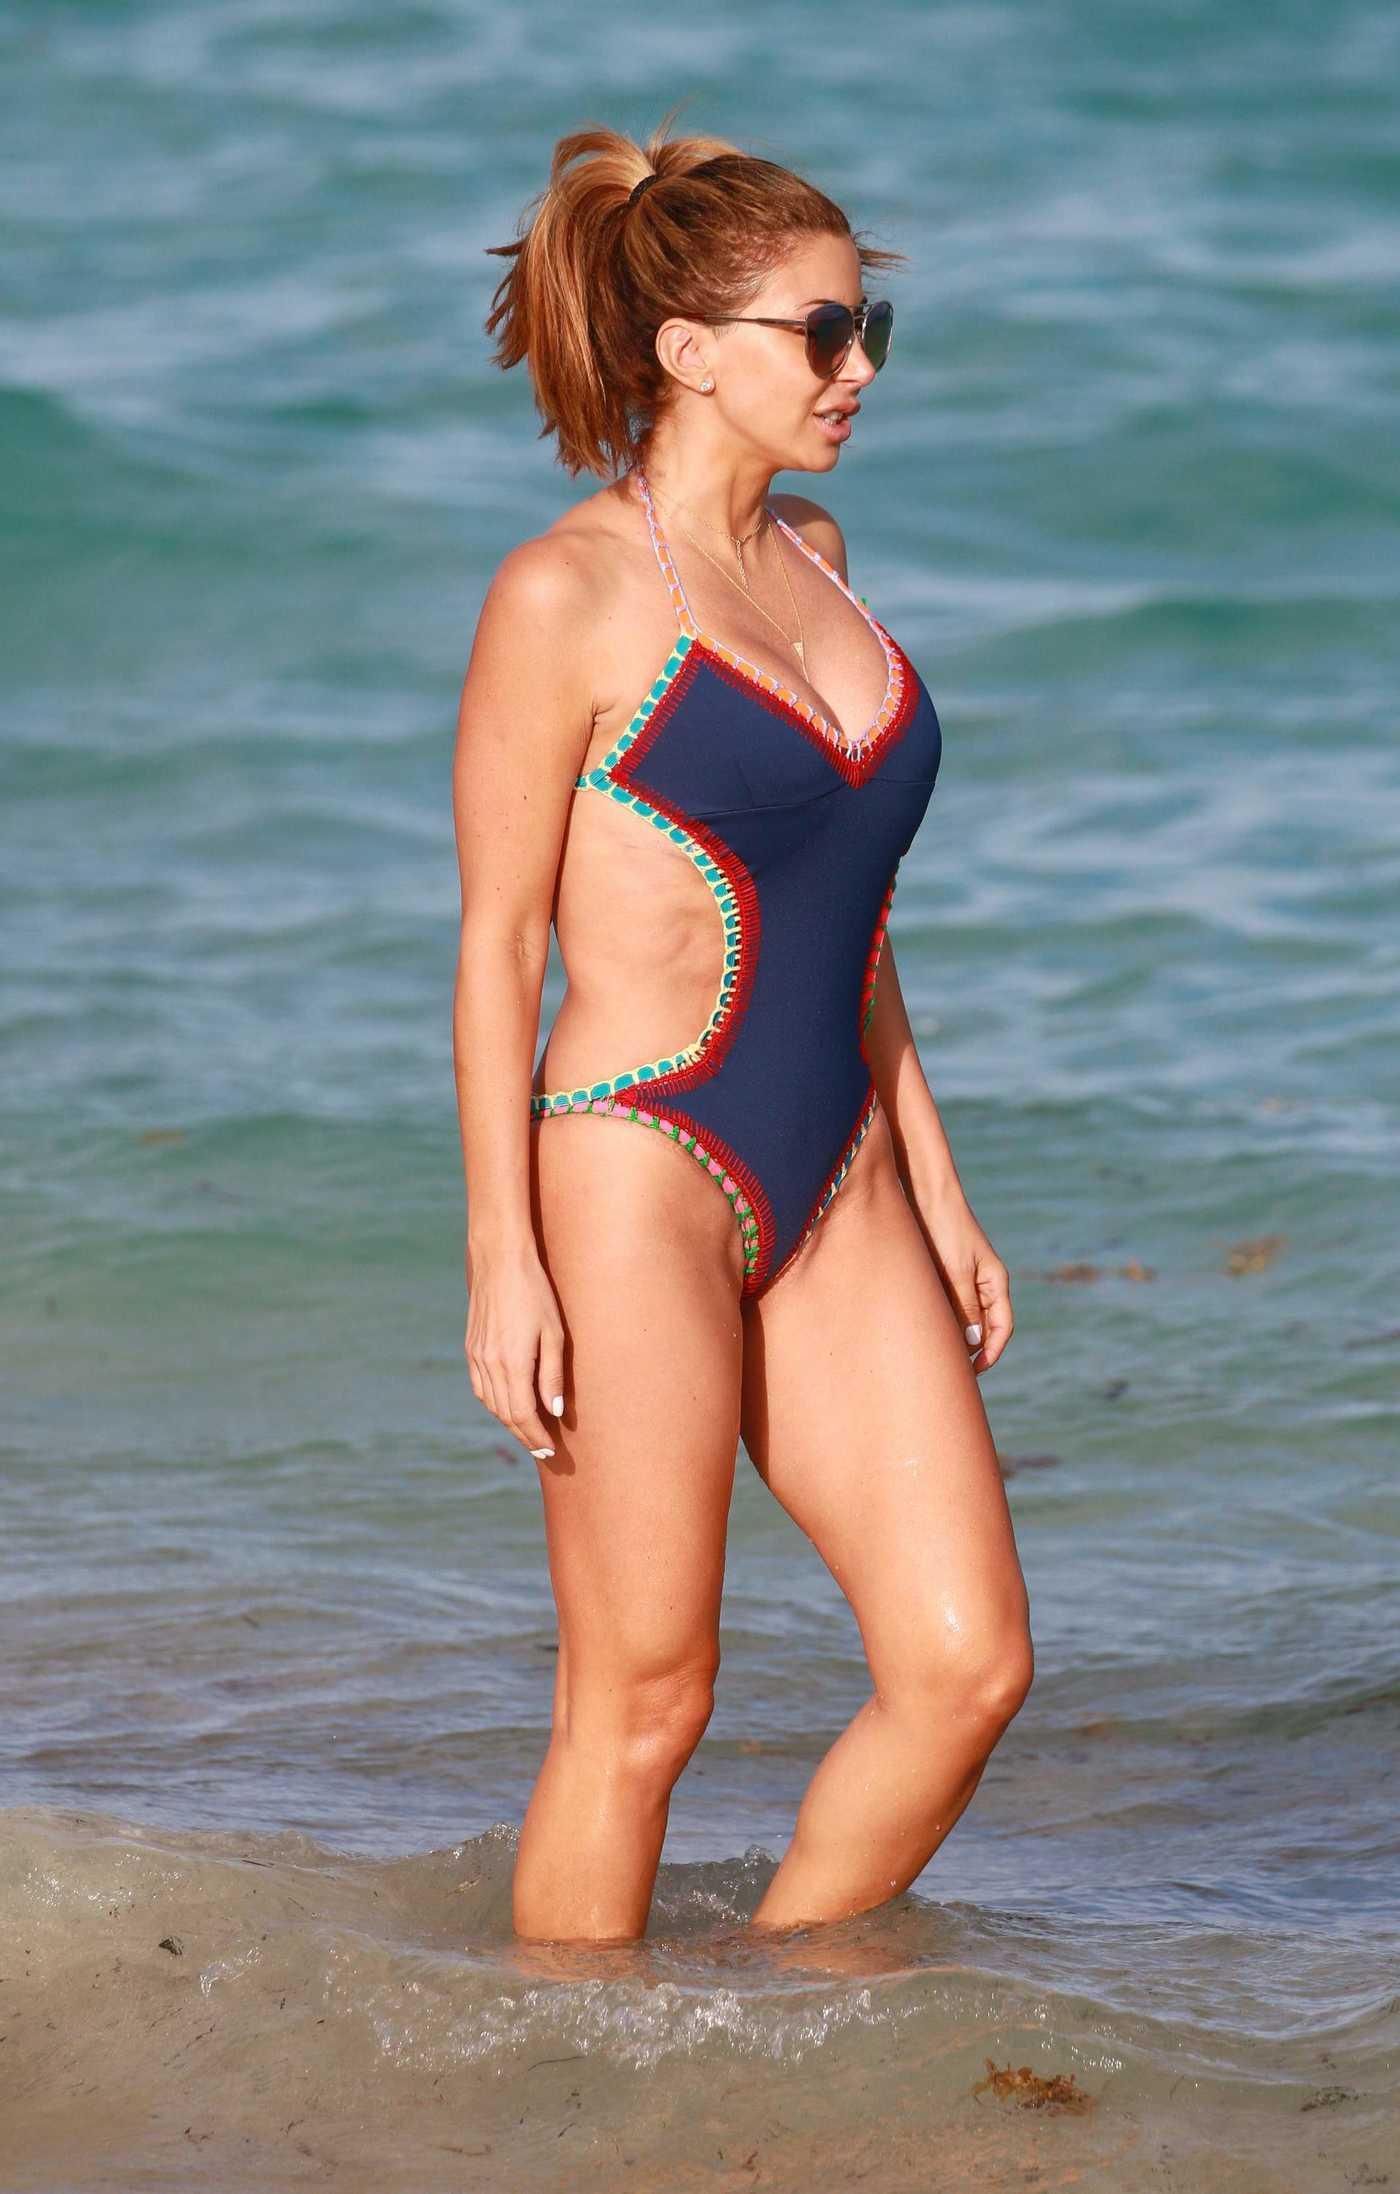 Larsa Pippen Wearing a Swimsuit at the Beach in Miami 11/26/2016